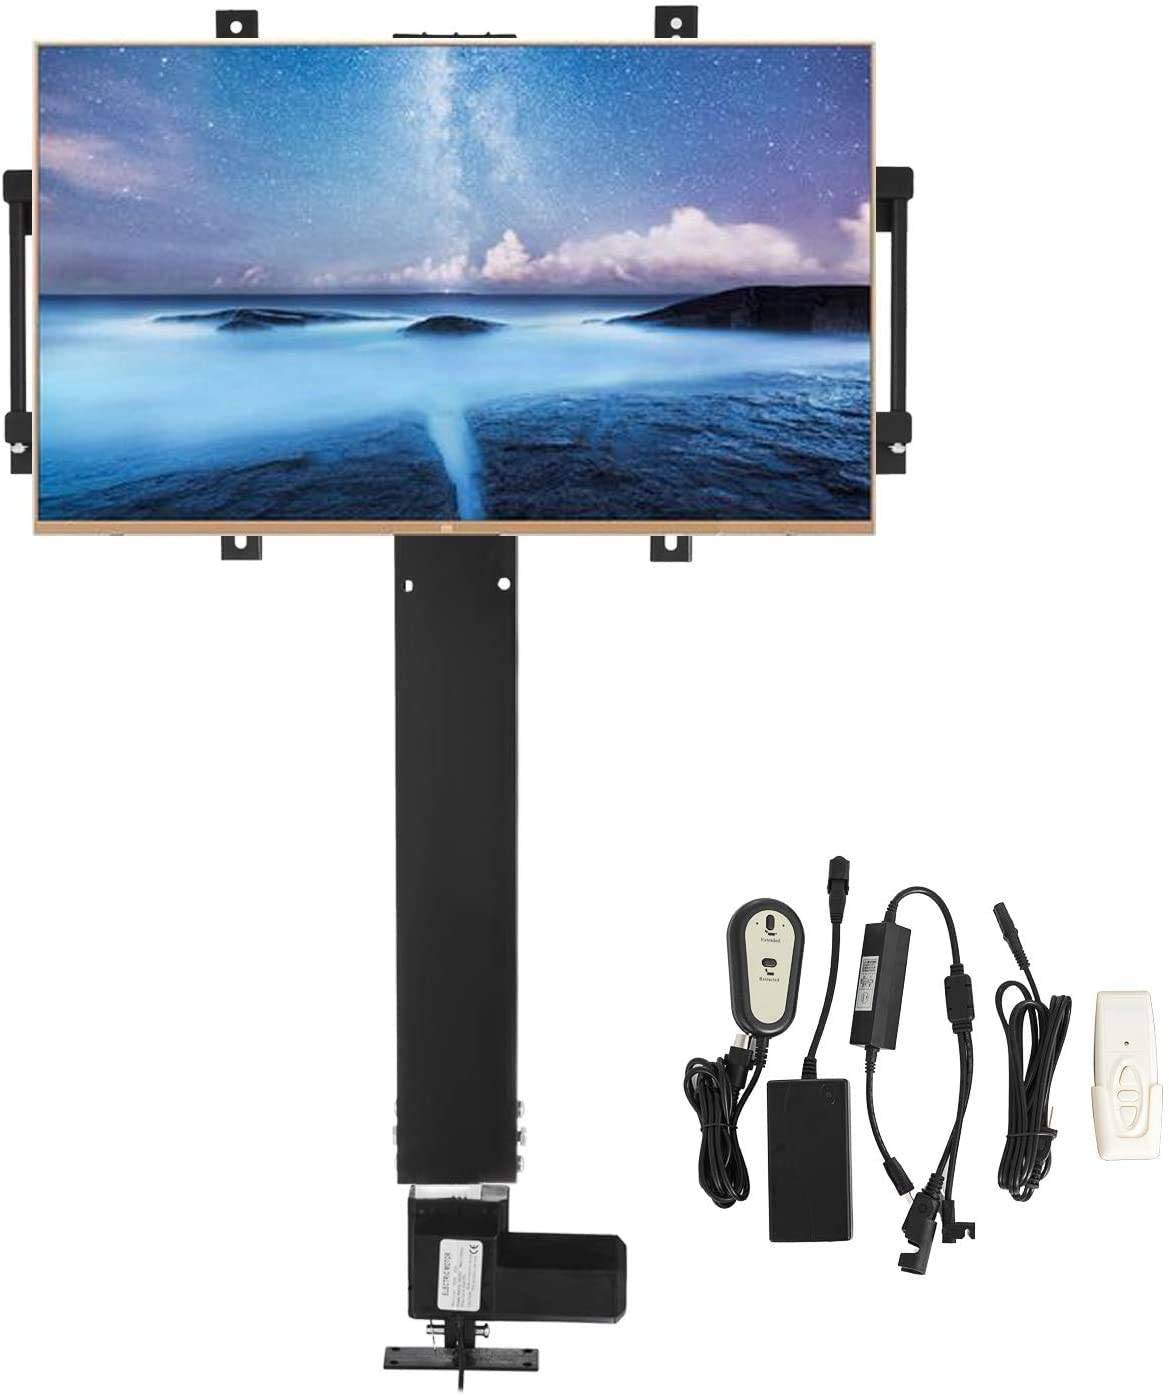 Mophorn TV Lift Stand Motorized 31.5 Stroke TV Lift Mount Bracket for 32 – 60 Flat Screen LCD LED OLED Plasma TVs Heavy Duty Electric TV Mount Motorised TV Lift Mechanism